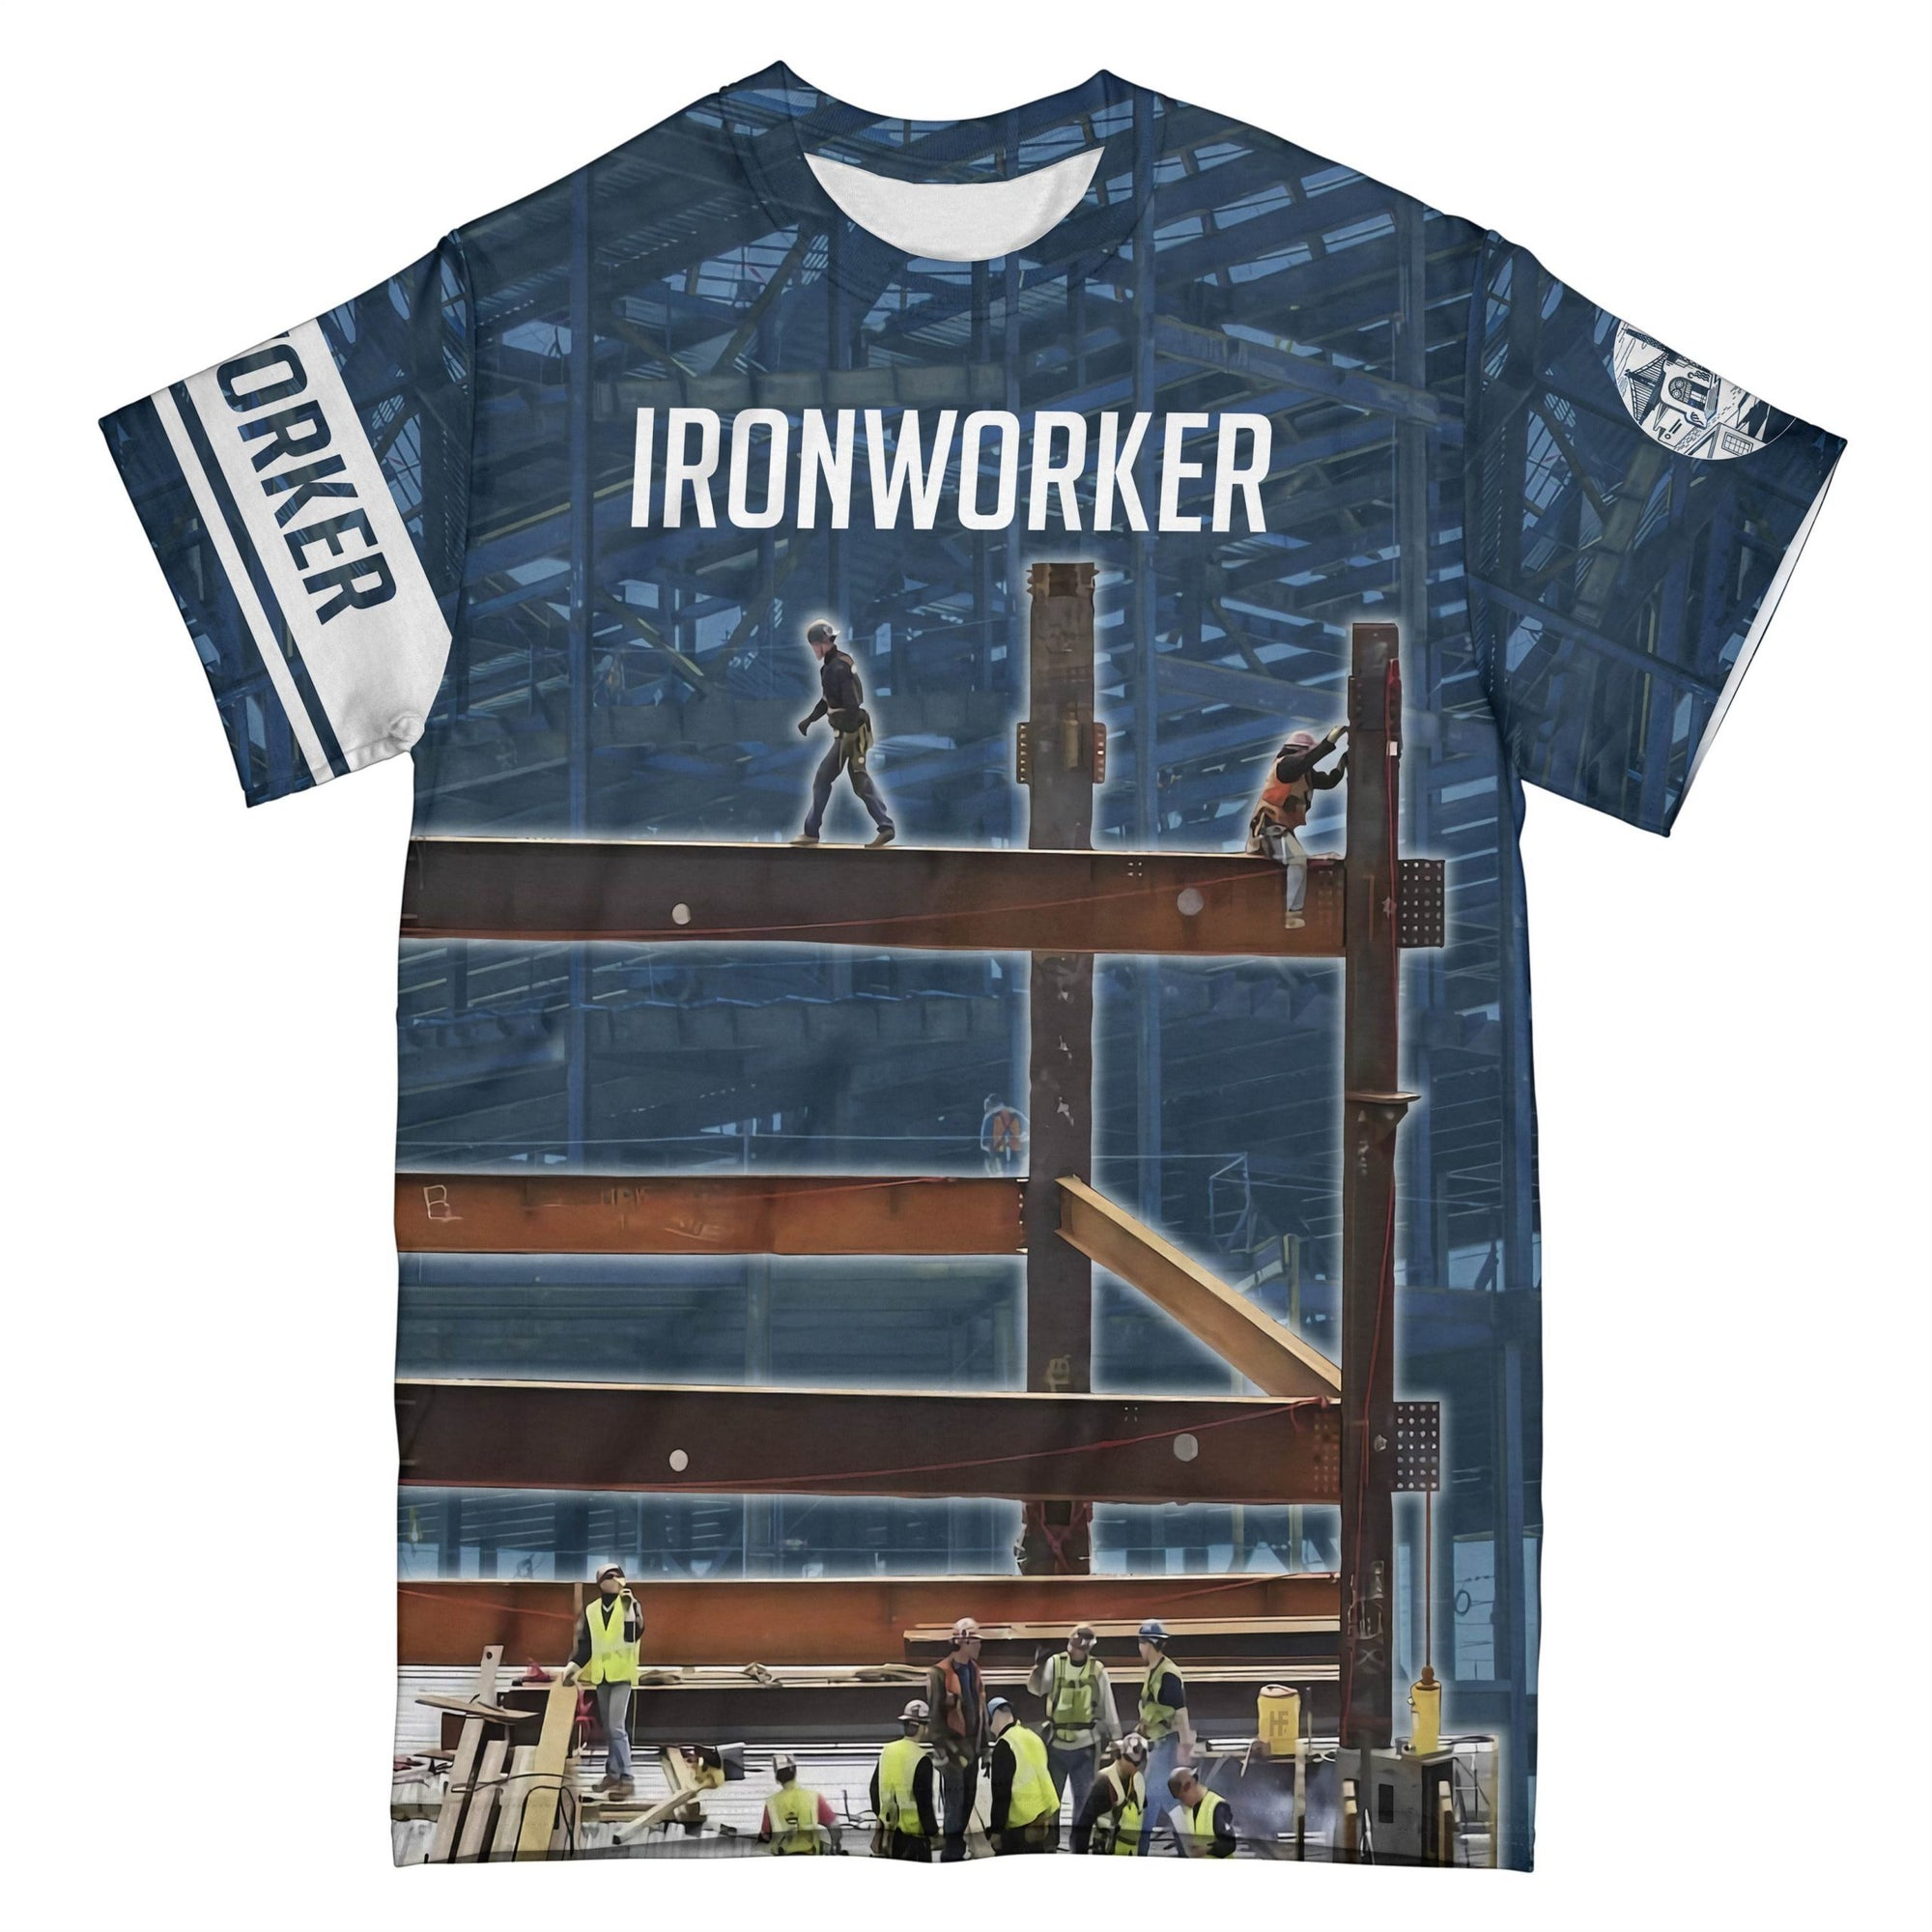 Ironworker v5 EZ15 2608 All Over T-Shirt